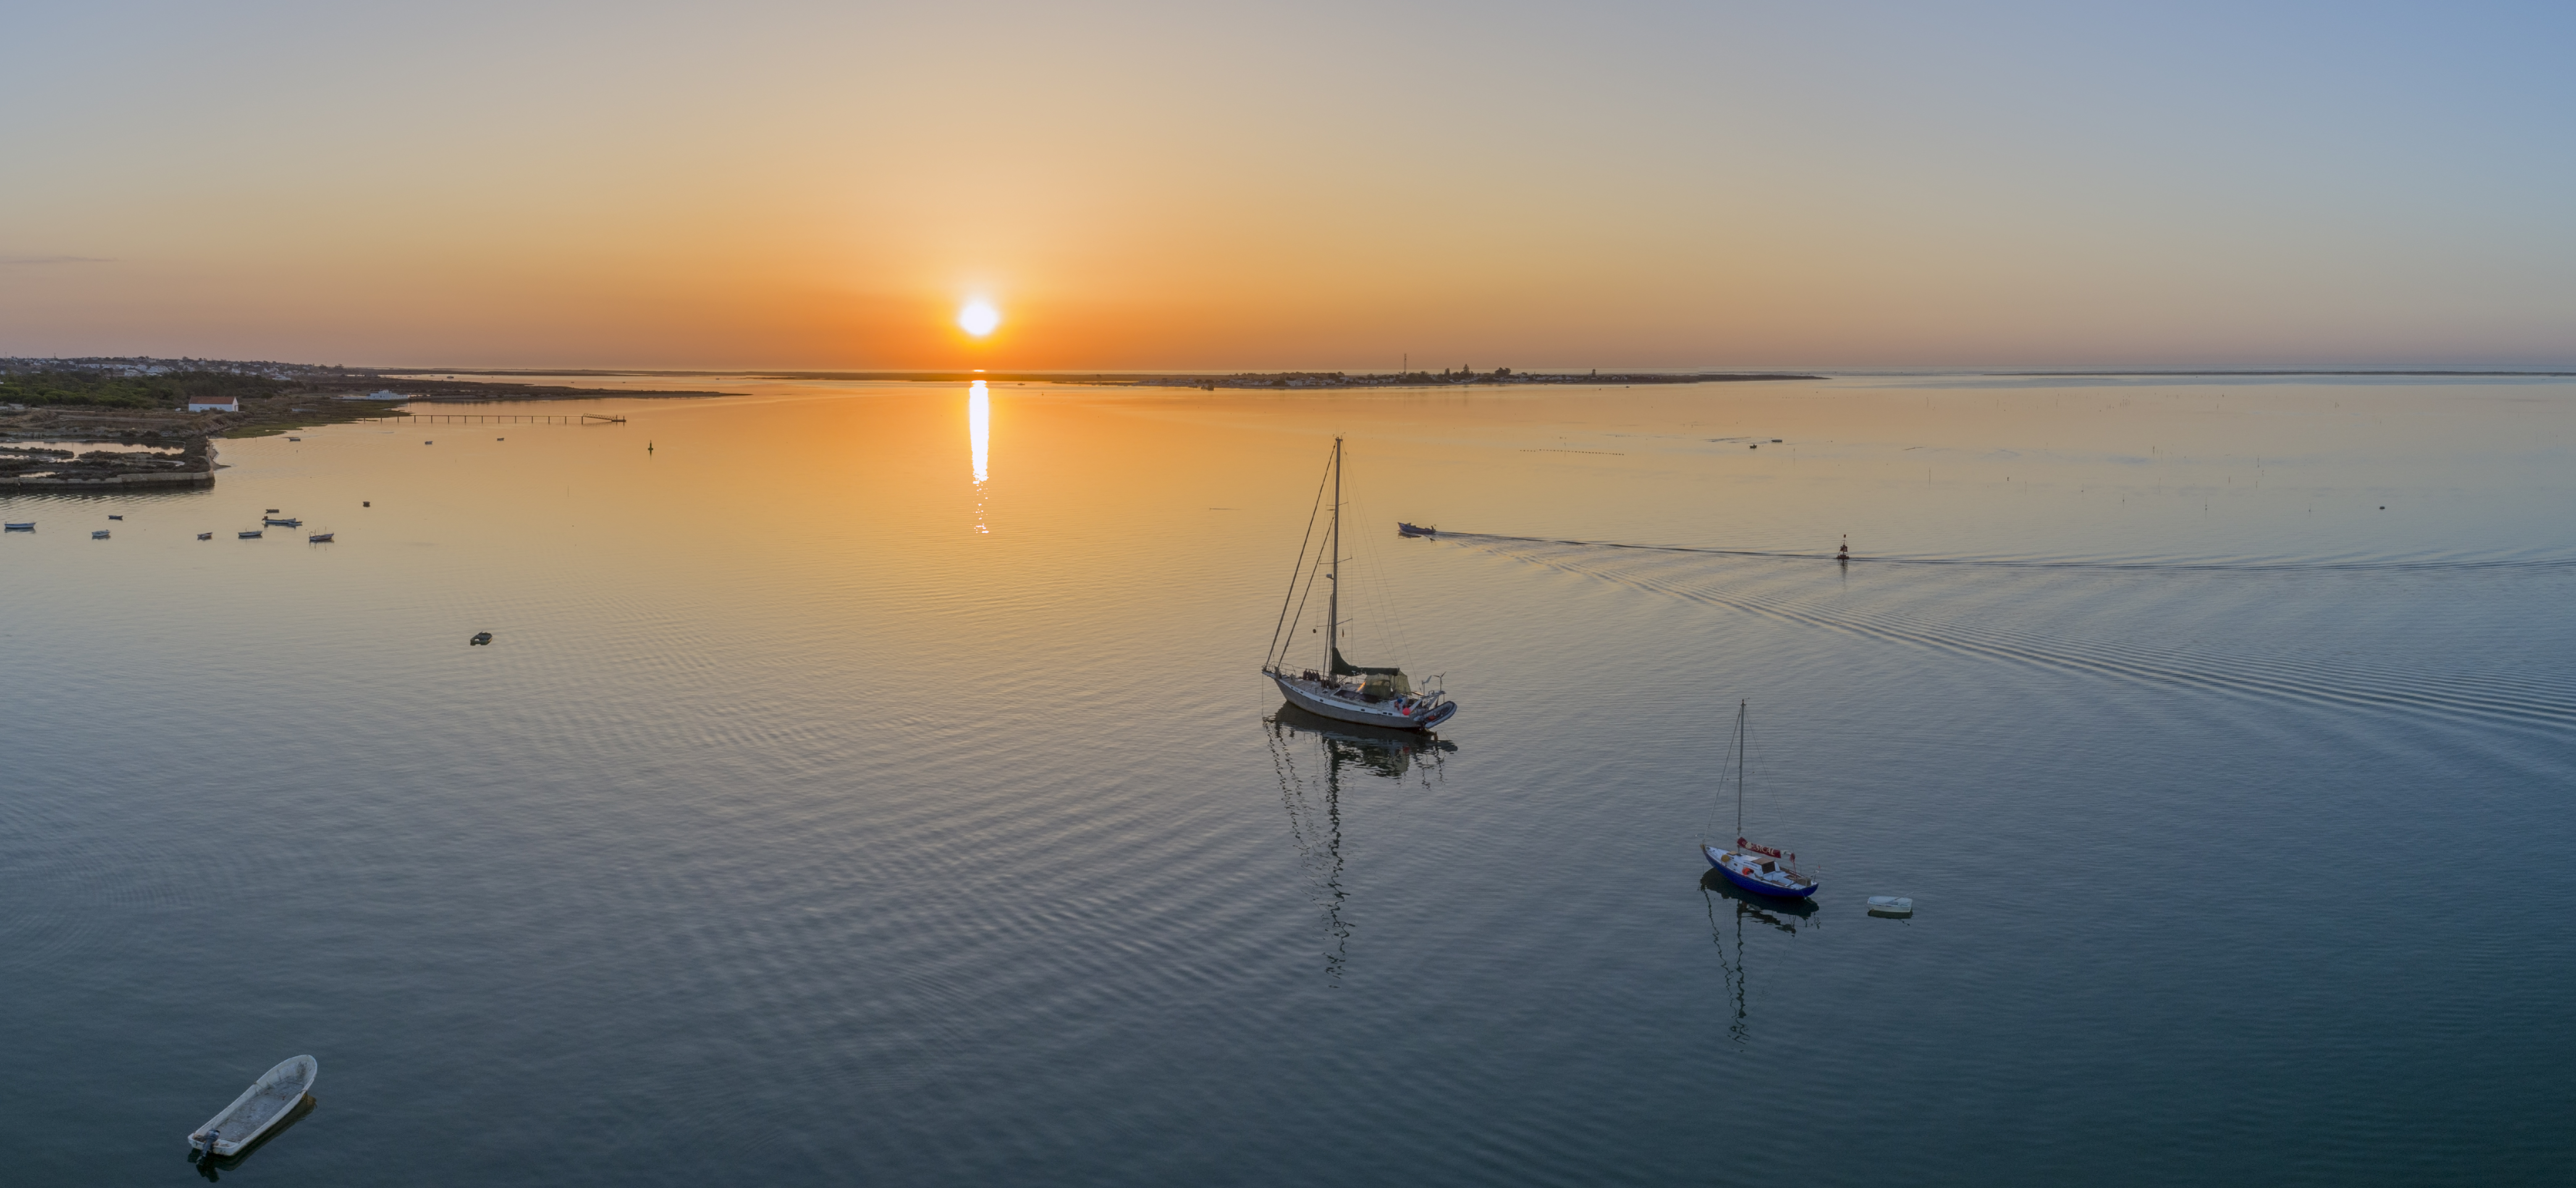 Sunrise in Ria Formosa Natural Park, Olhão. Portugal.